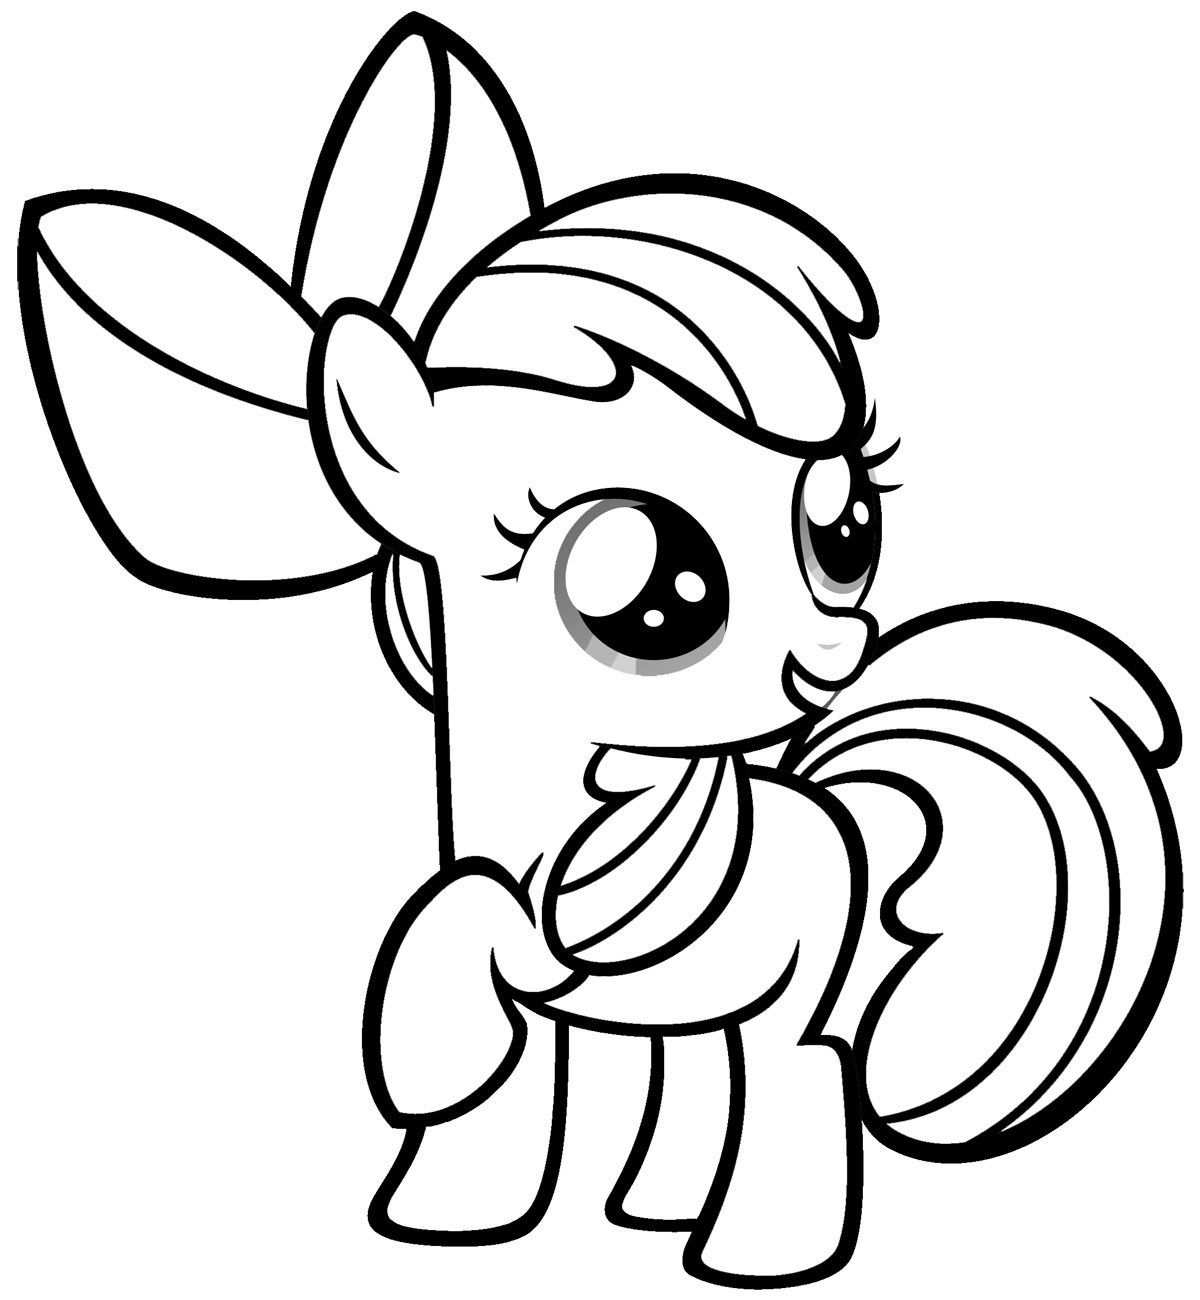 My Little Pony Fluttershy Ausmalbilder : My Little Pony Color Pages My Little Pony Coloring Pages Free